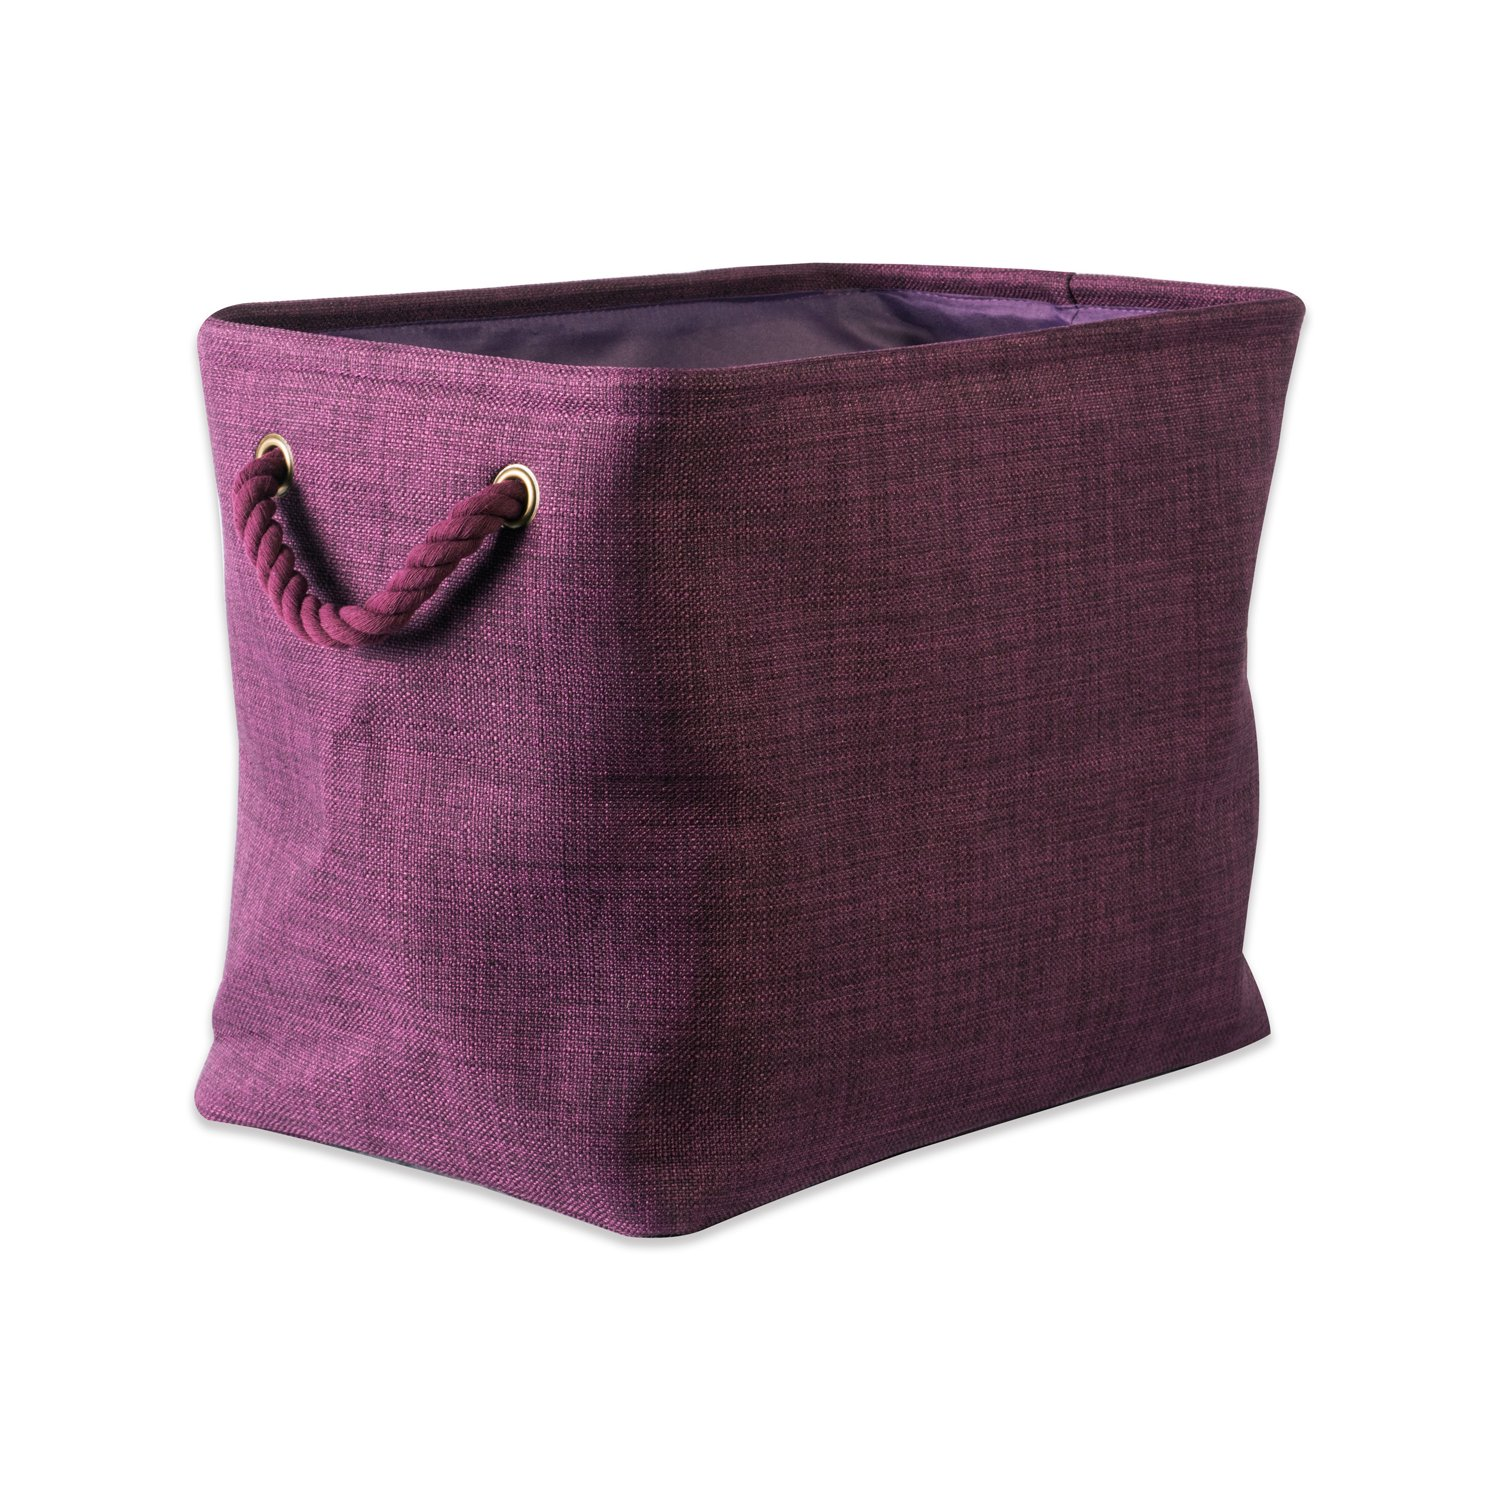 DII CAMZ37089  5568 Collapsible Variegated Polyester Storage Bin, Medium, Eggplant